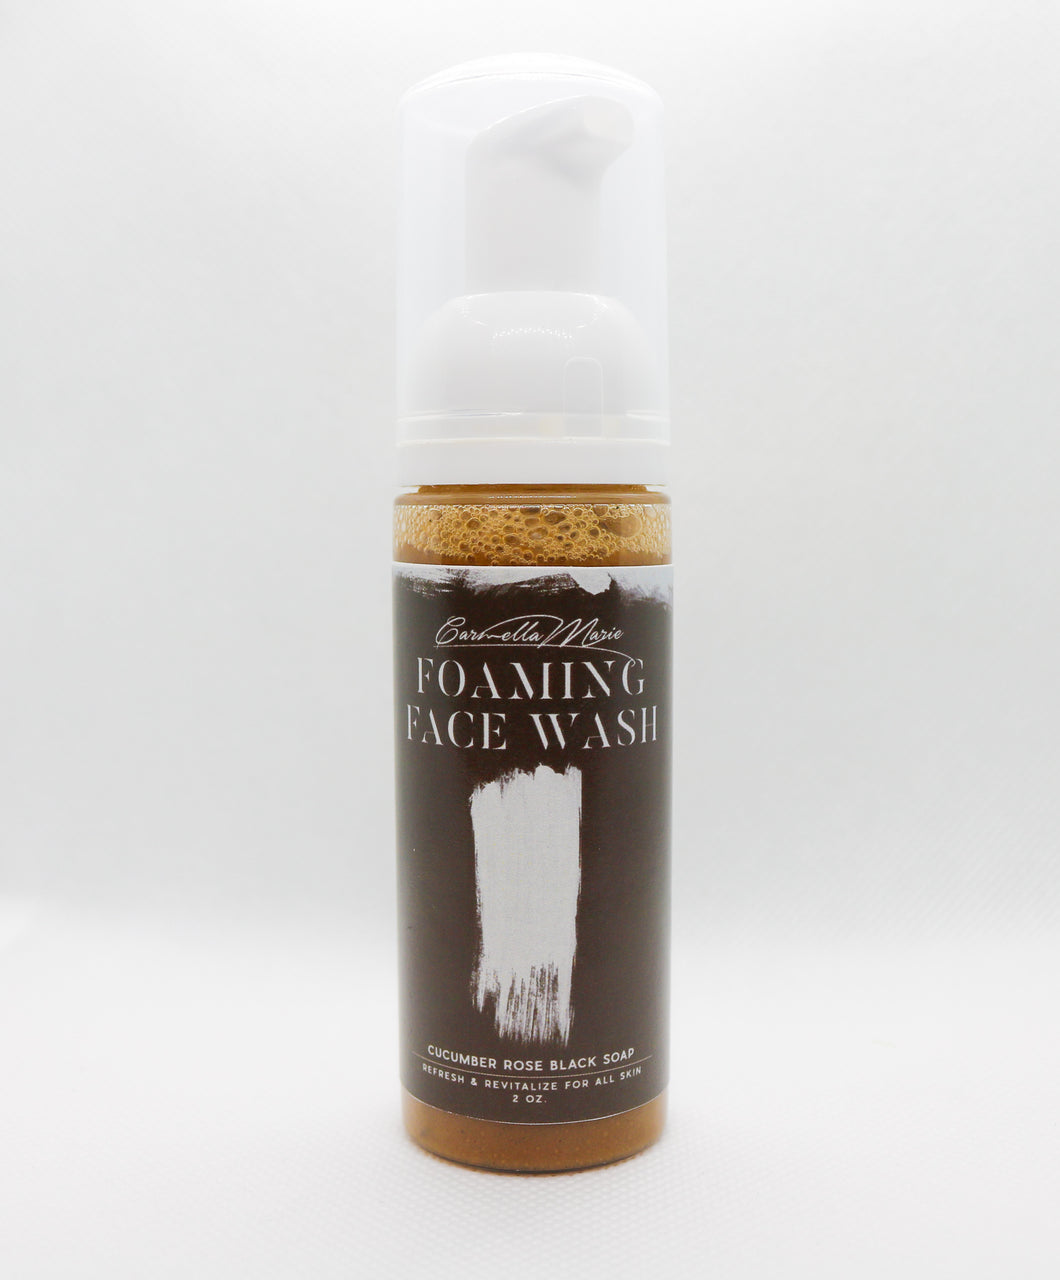 Black Foaming Facial Wash